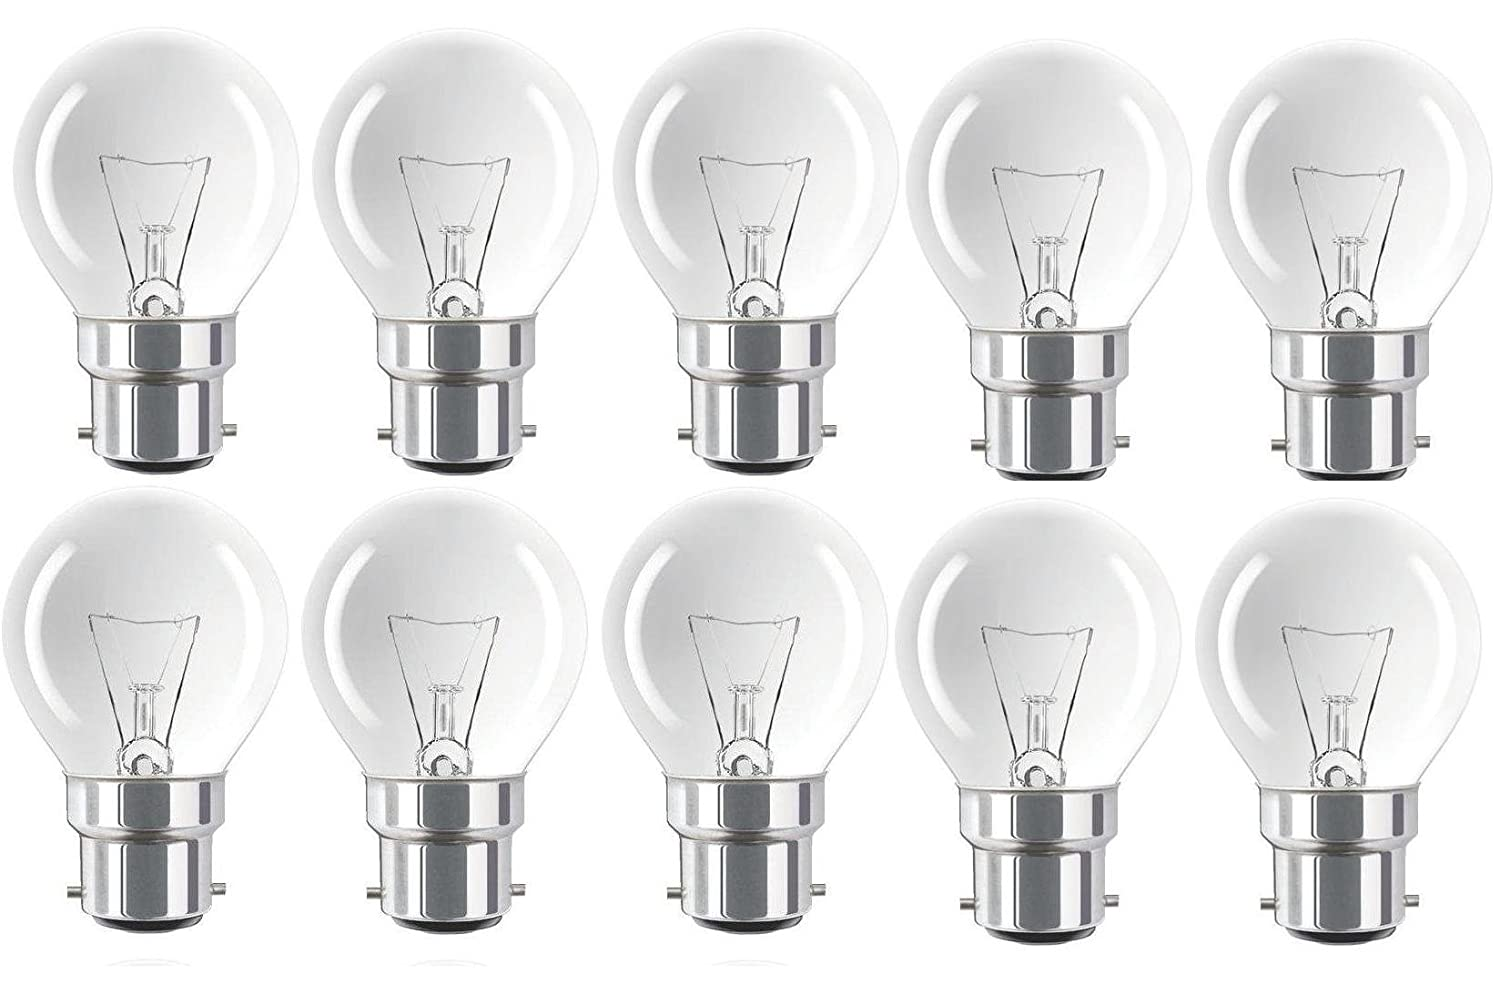 cap mini round dimmable mains bayonet light incandescent lamps pack classic ball golf eveready bulbs bc dp globes clear